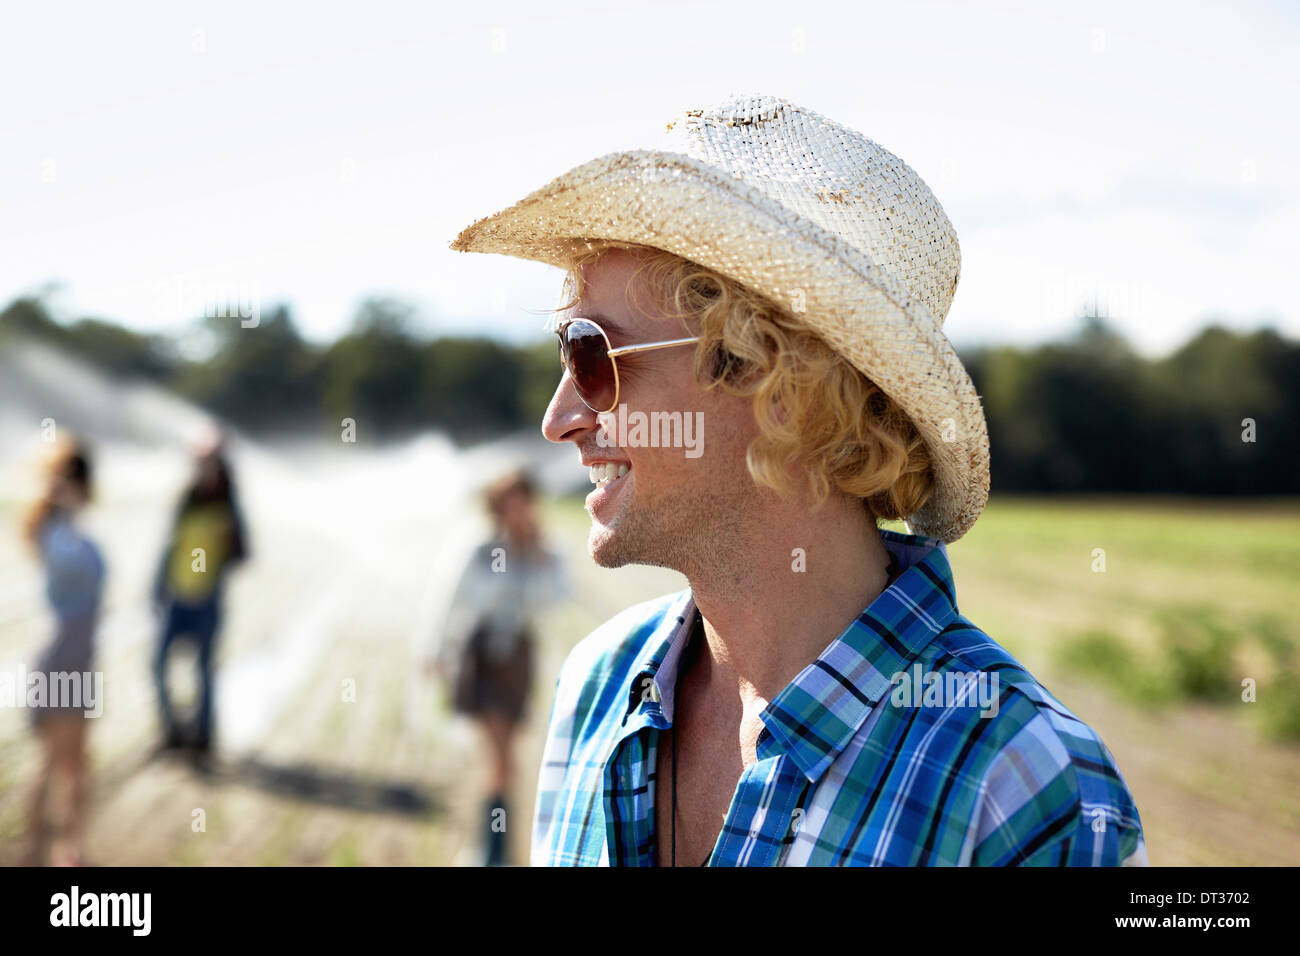 A young man in straw hat and sunglasses Irrigation sprinklers in the field Stock Photo